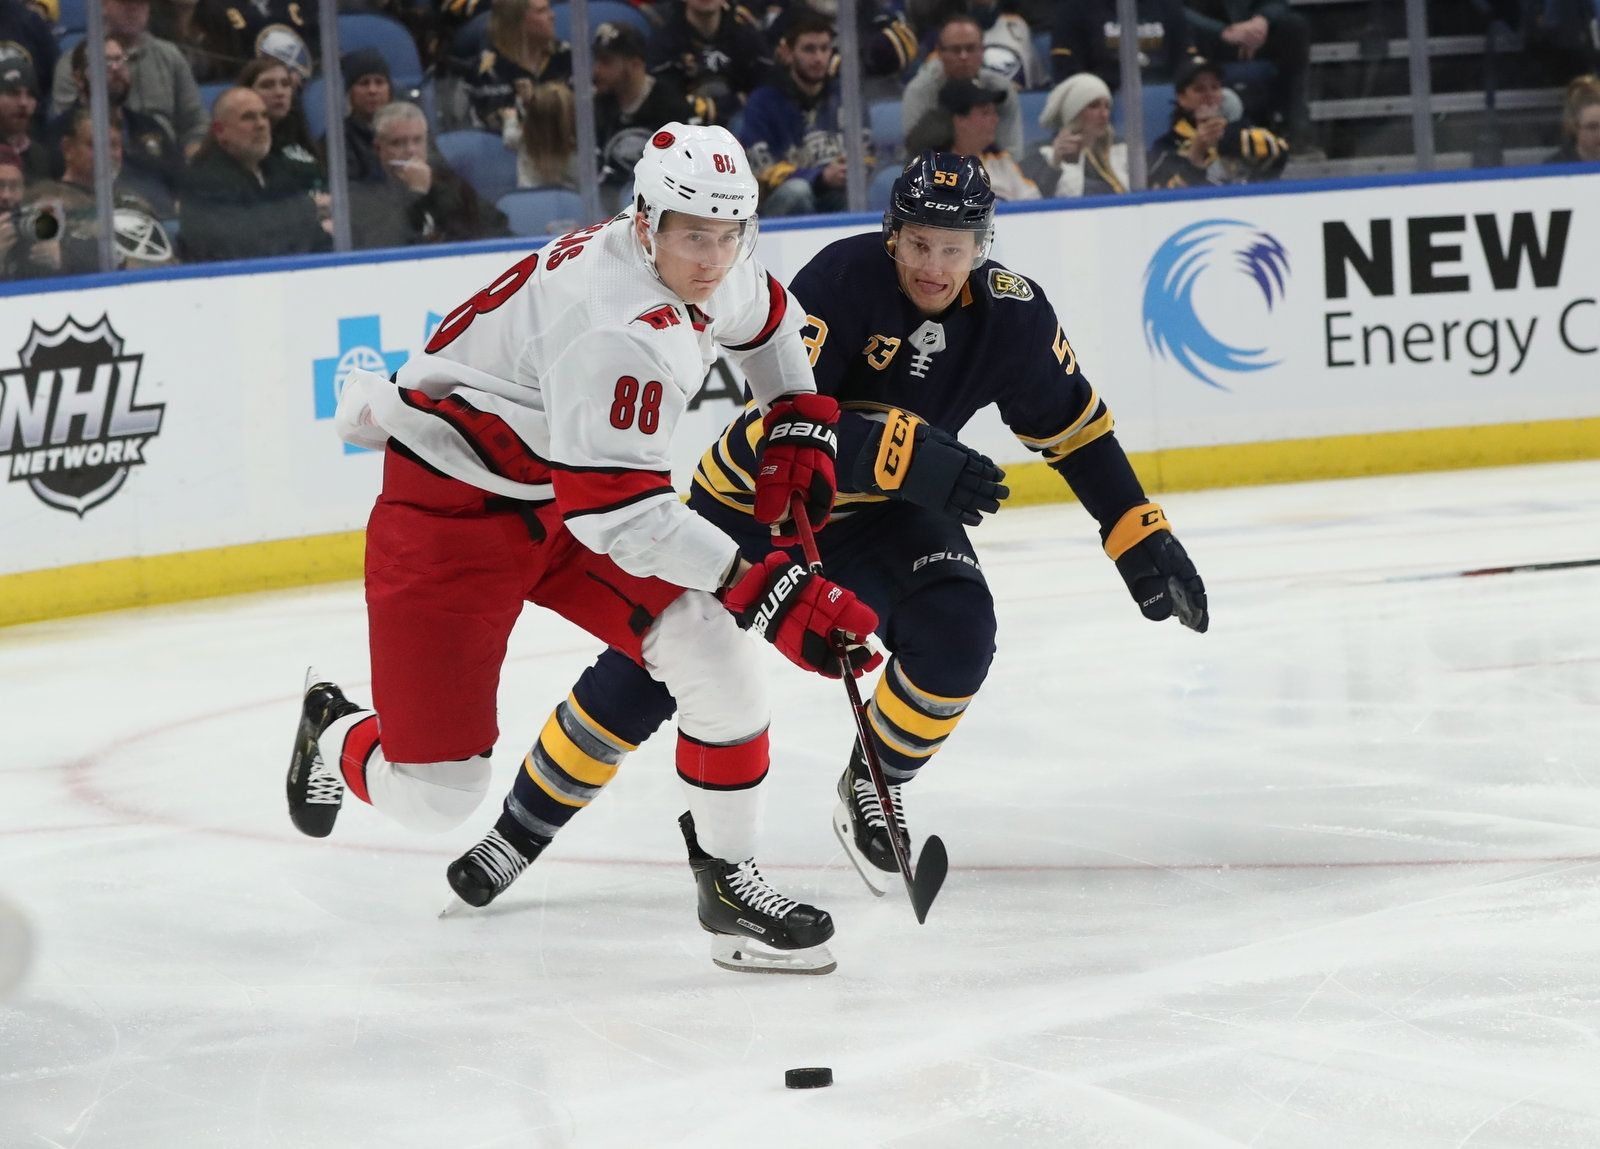 Buffalo Sabres center Jeff Skinner (53) skates without a stick against Carolina Hurricanes center Martin Necas (88) in the first period.